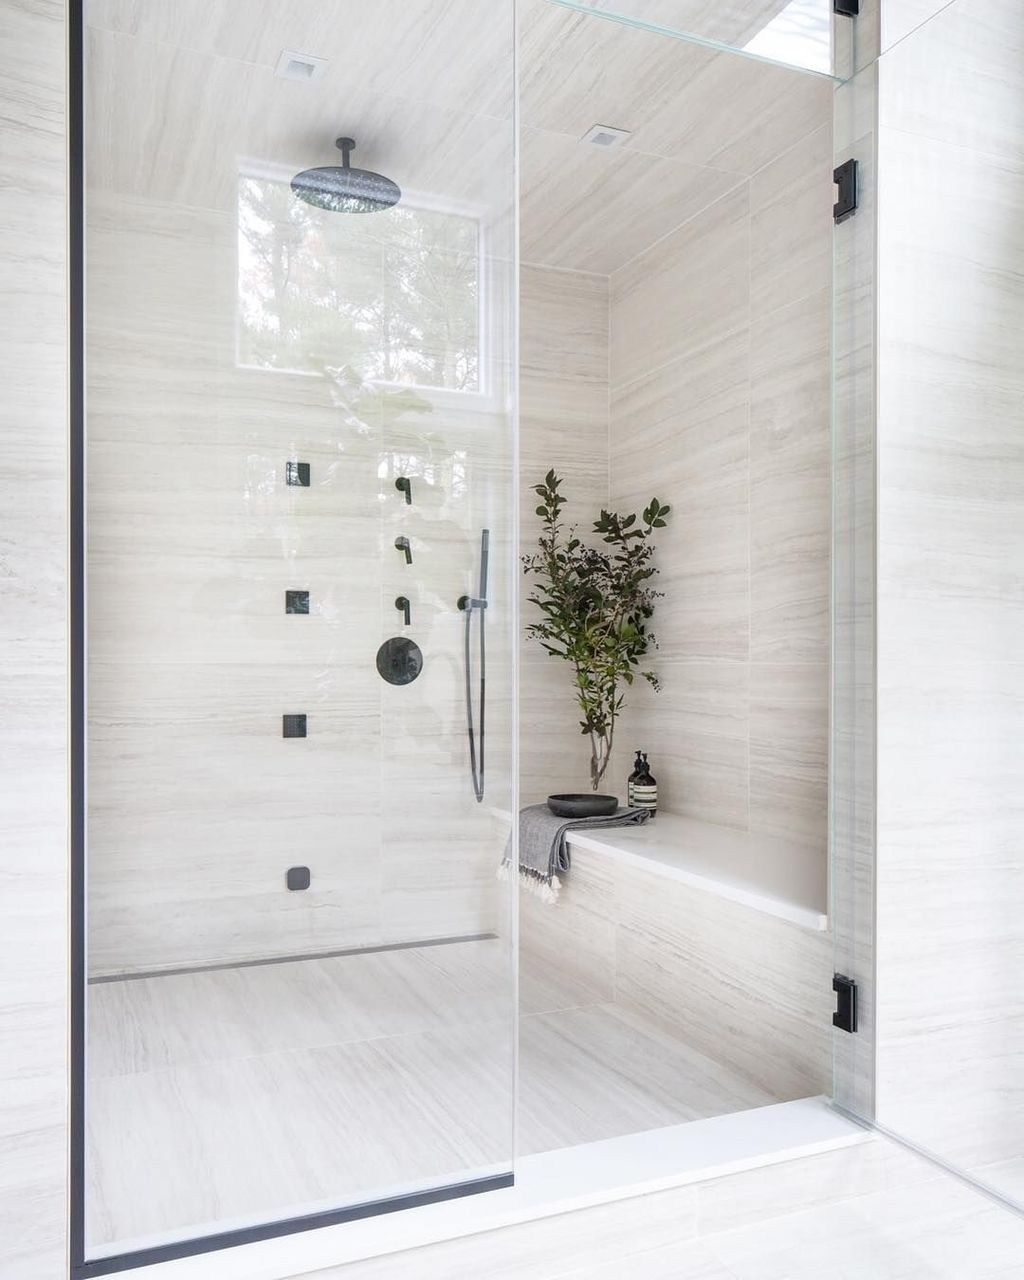 50 Awesome Winter Bathroom Decor You Need to Have - SWEETYHOMEE #style #shopping #styles #outfit #pretty #girl #girls #beauty #beautiful #me #cute #stylish #photooftheday #swag #dress #shoes #diy #design #fashion #homedecor